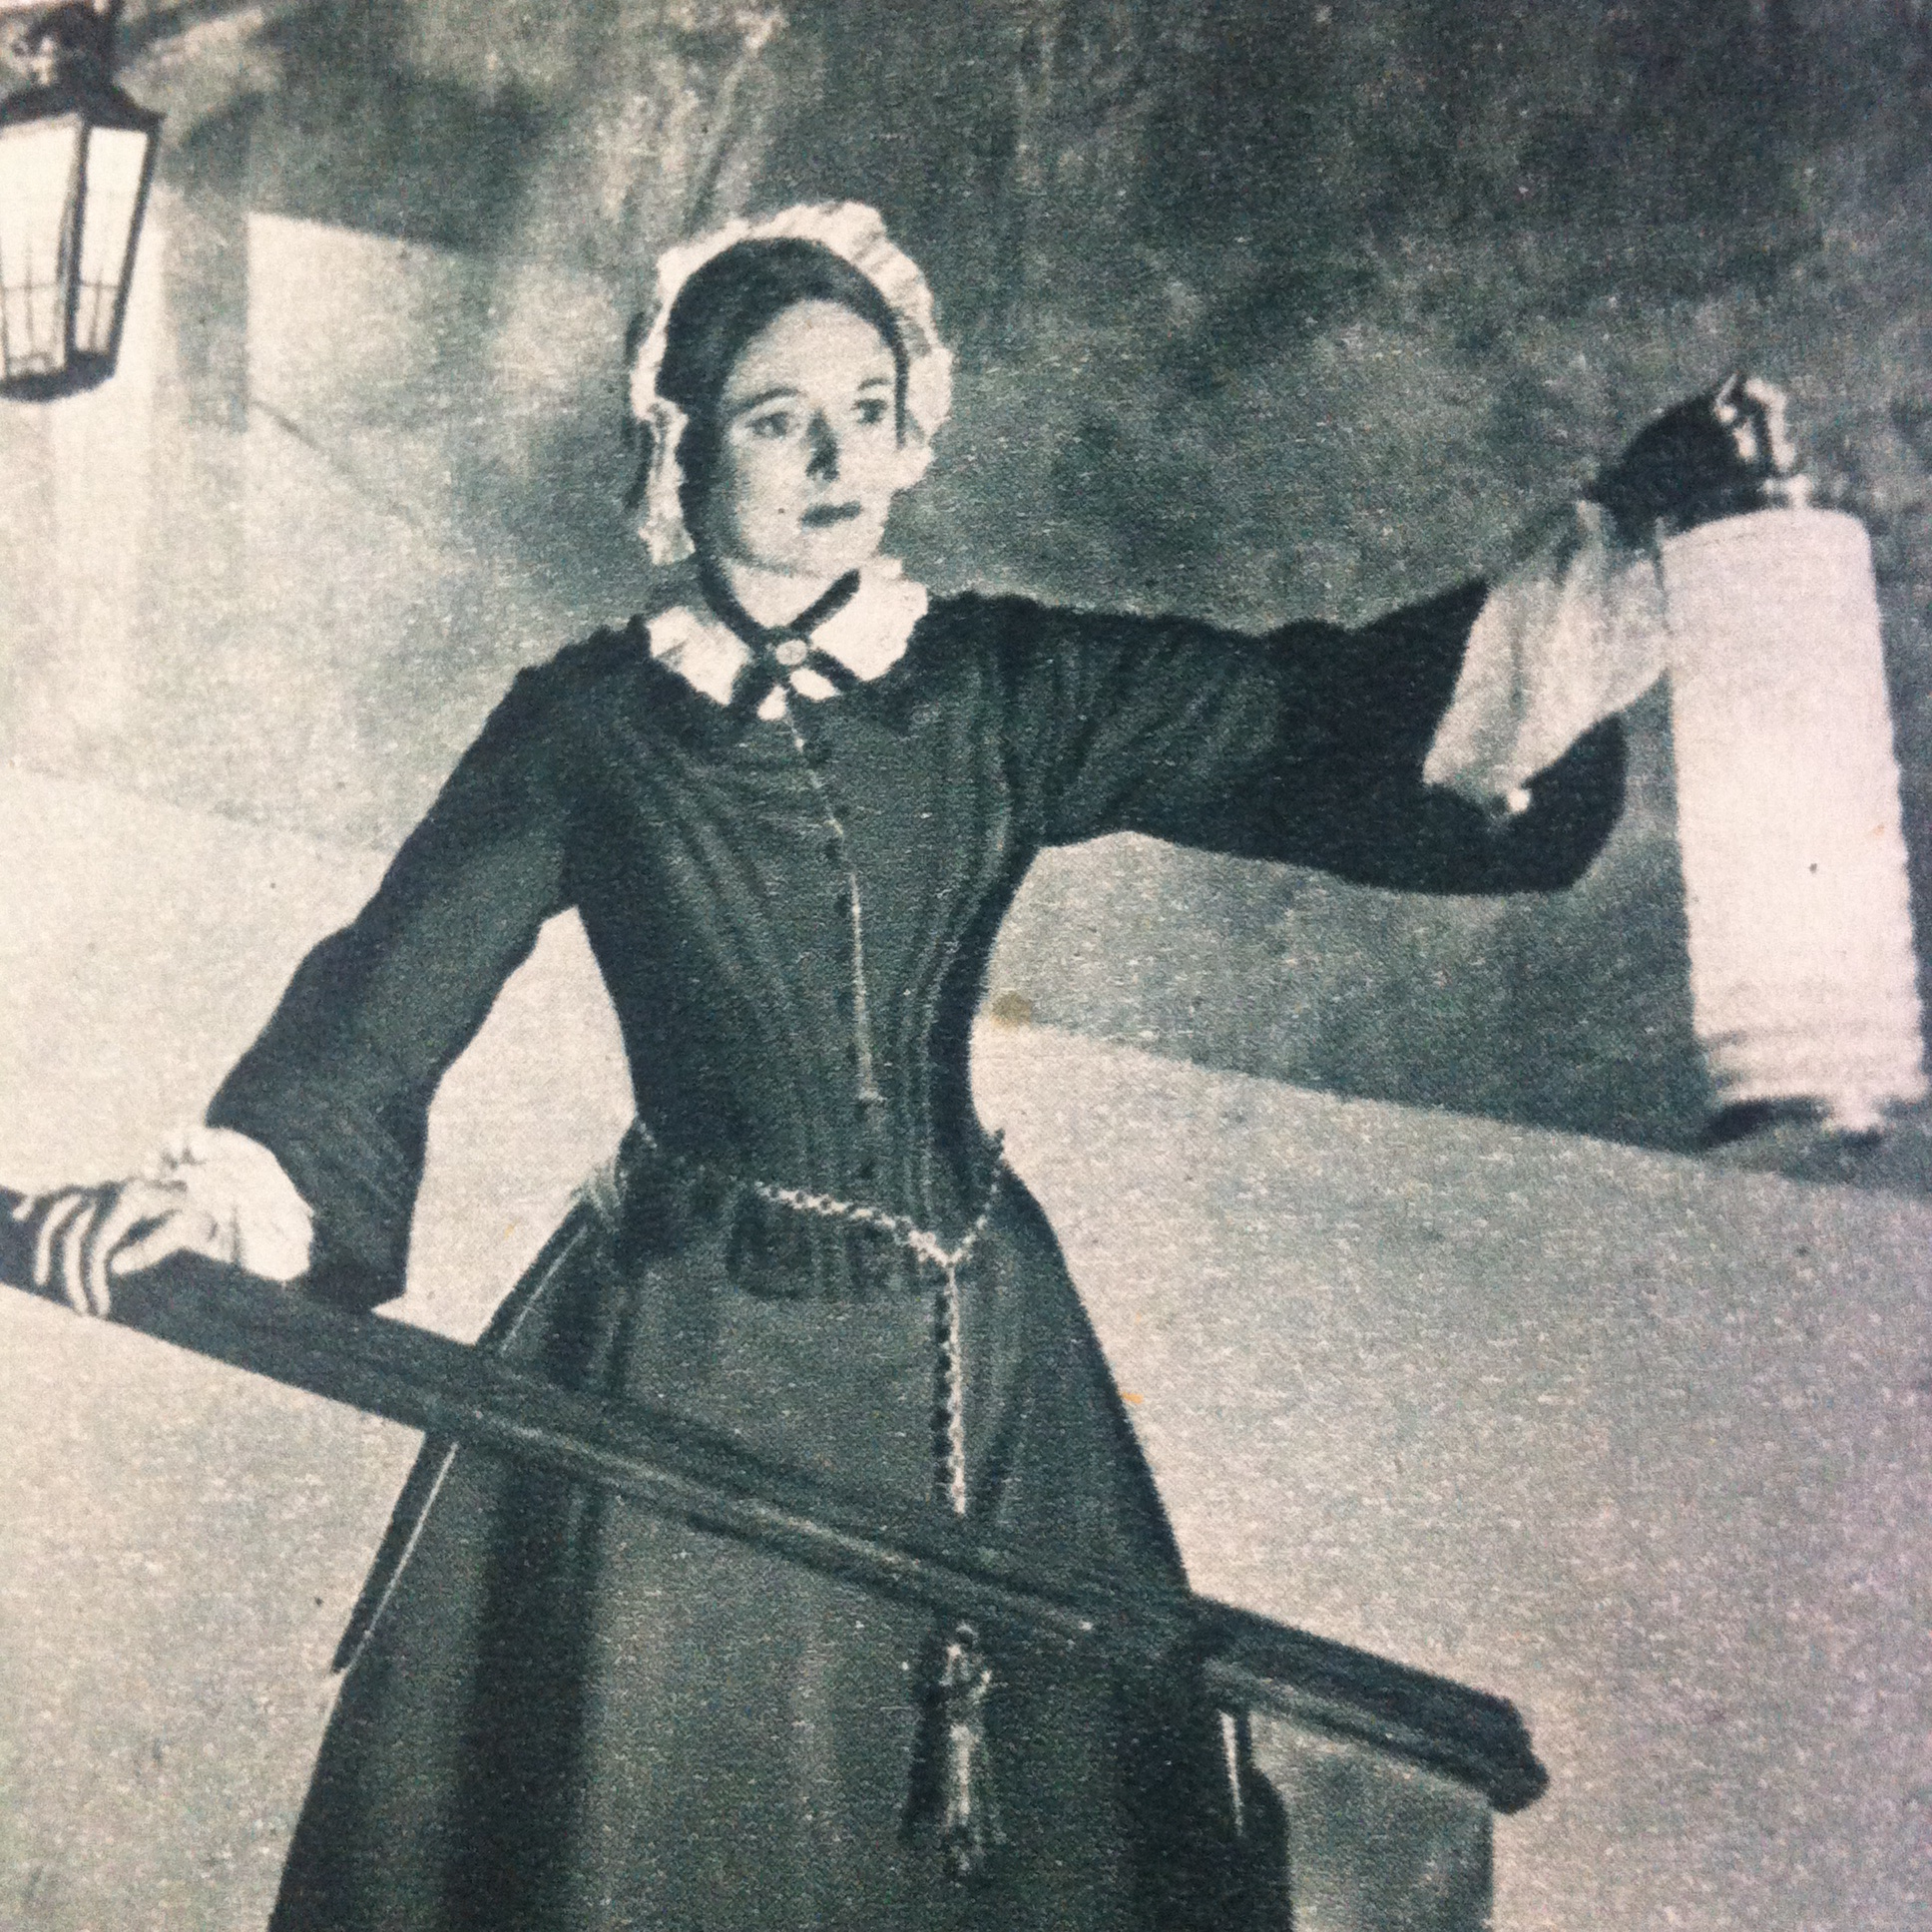 Anna Neagle in The Lady with a Lamp (1951)